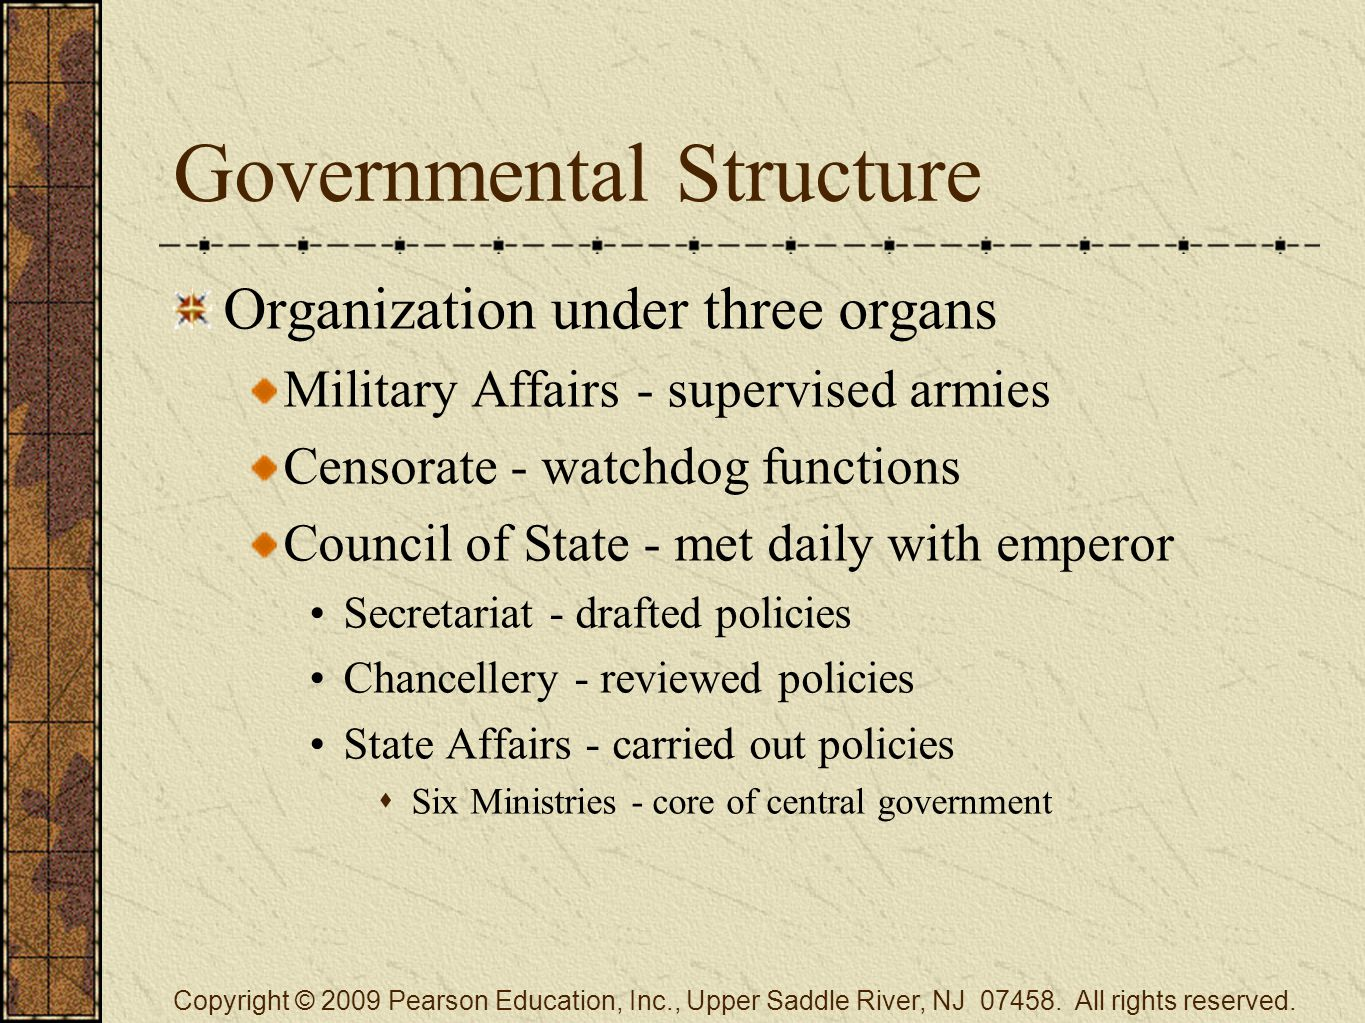 Governmental Structure Organization under three organs Military Affairs - supervised armies Censorate - watchdog functions Council of State - met daily with emperor Secretariat - drafted policies Chancellery - reviewed policies State Affairs - carried out policies  Six Ministries - core of central government Copyright © 2009 Pearson Education, Inc., Upper Saddle River, NJ 07458.